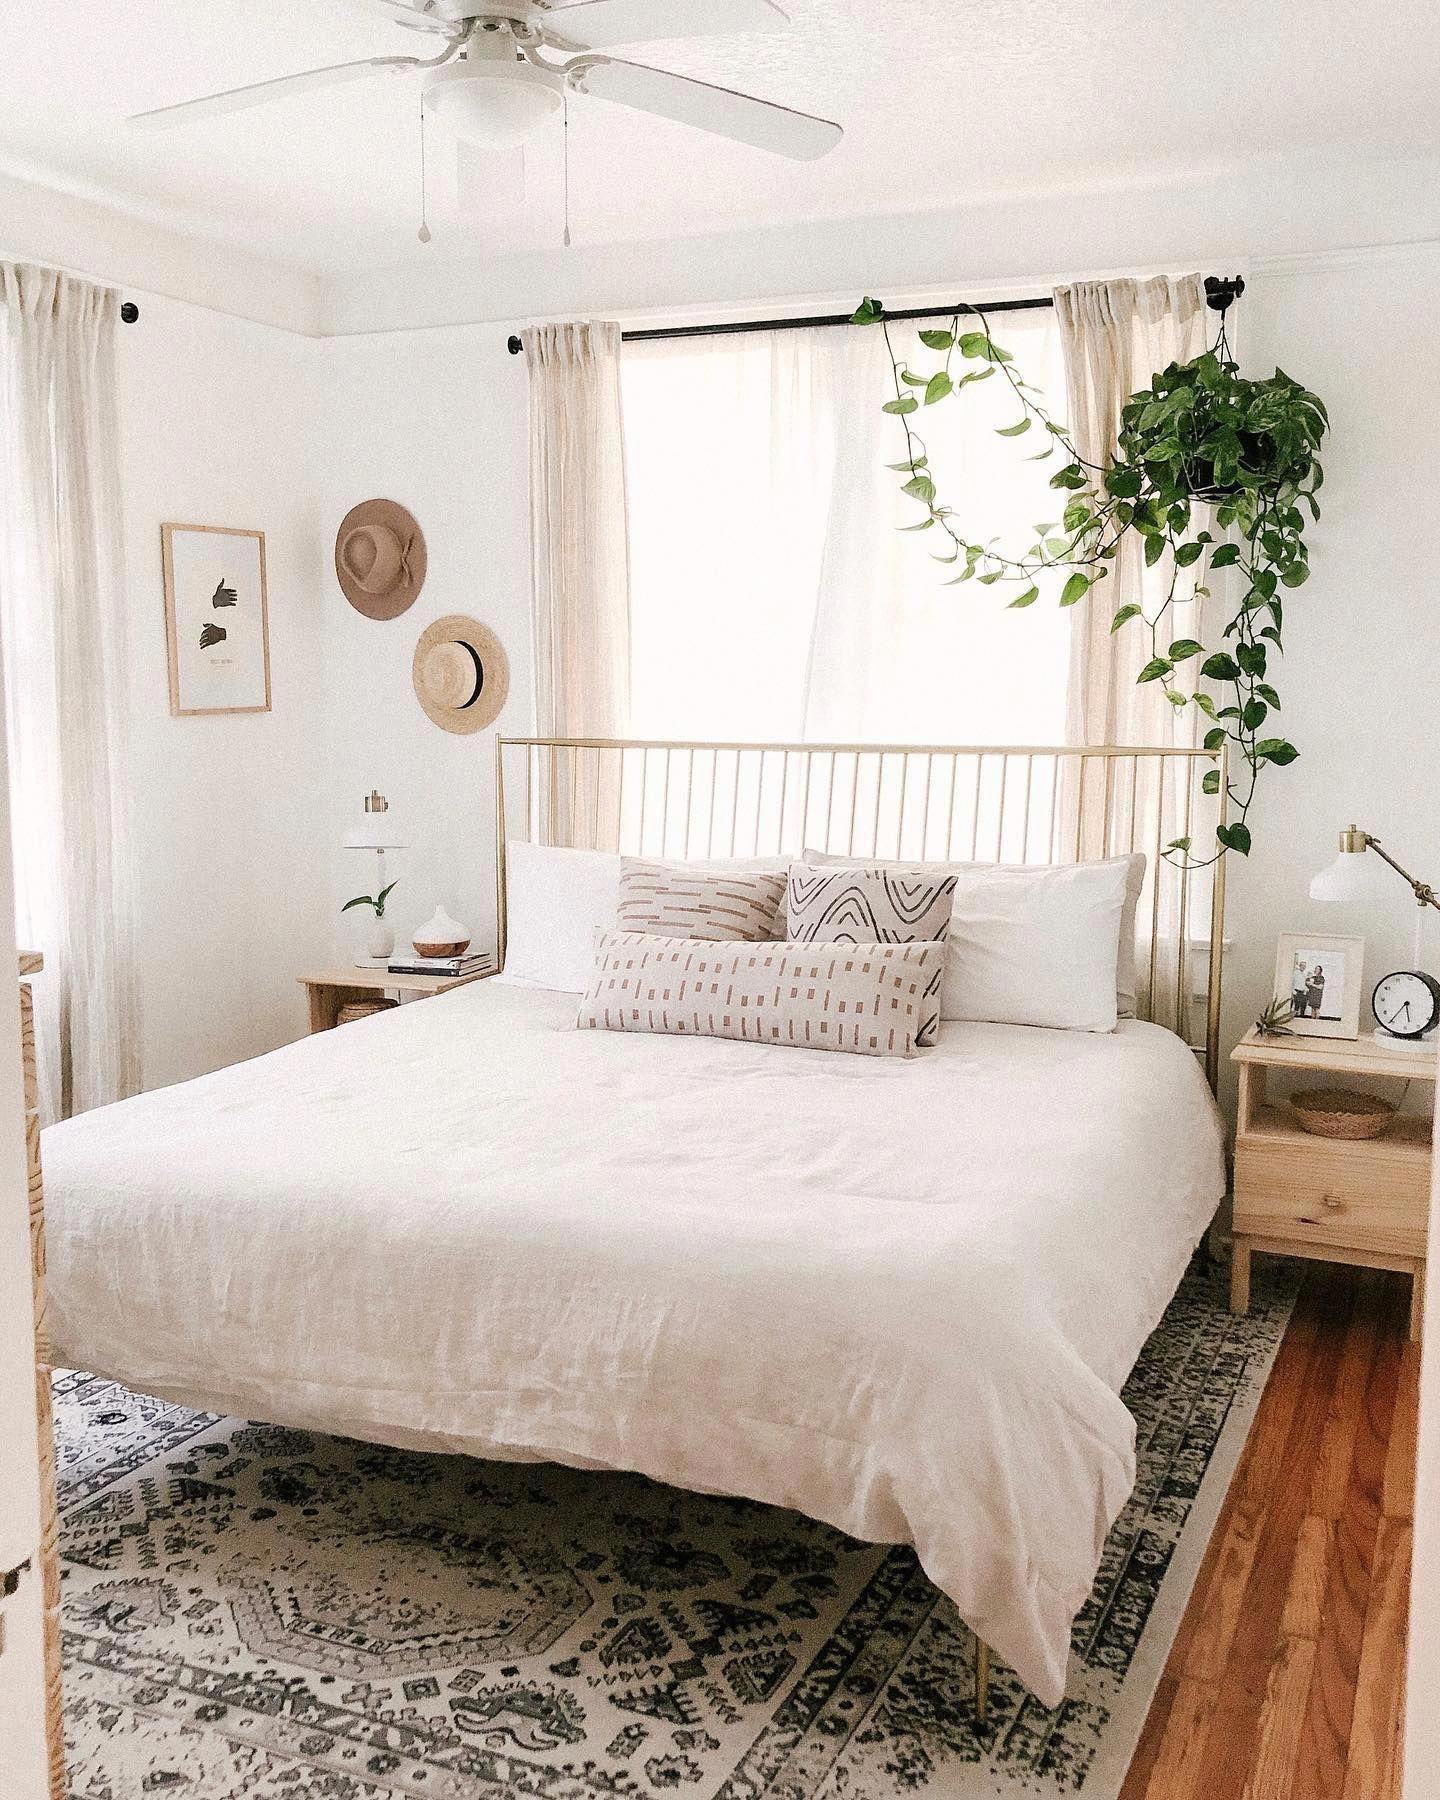 Excellent home decor advice info are offered on our web pages. Have a look and you will not be sorry you did. #Homedecor